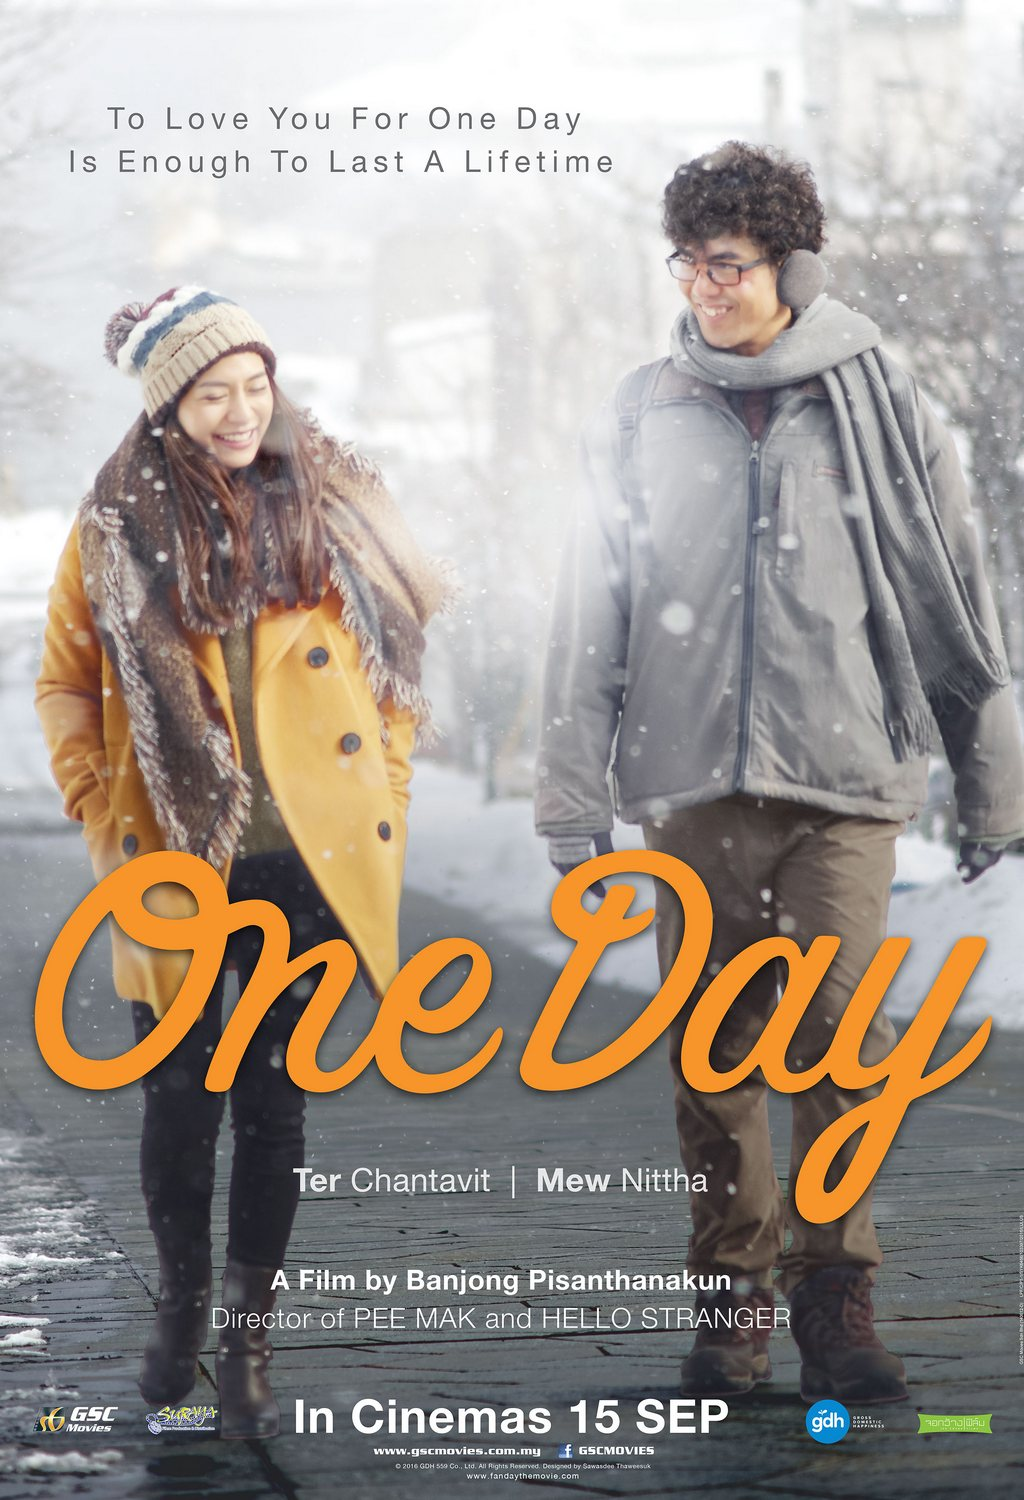 To be one movie